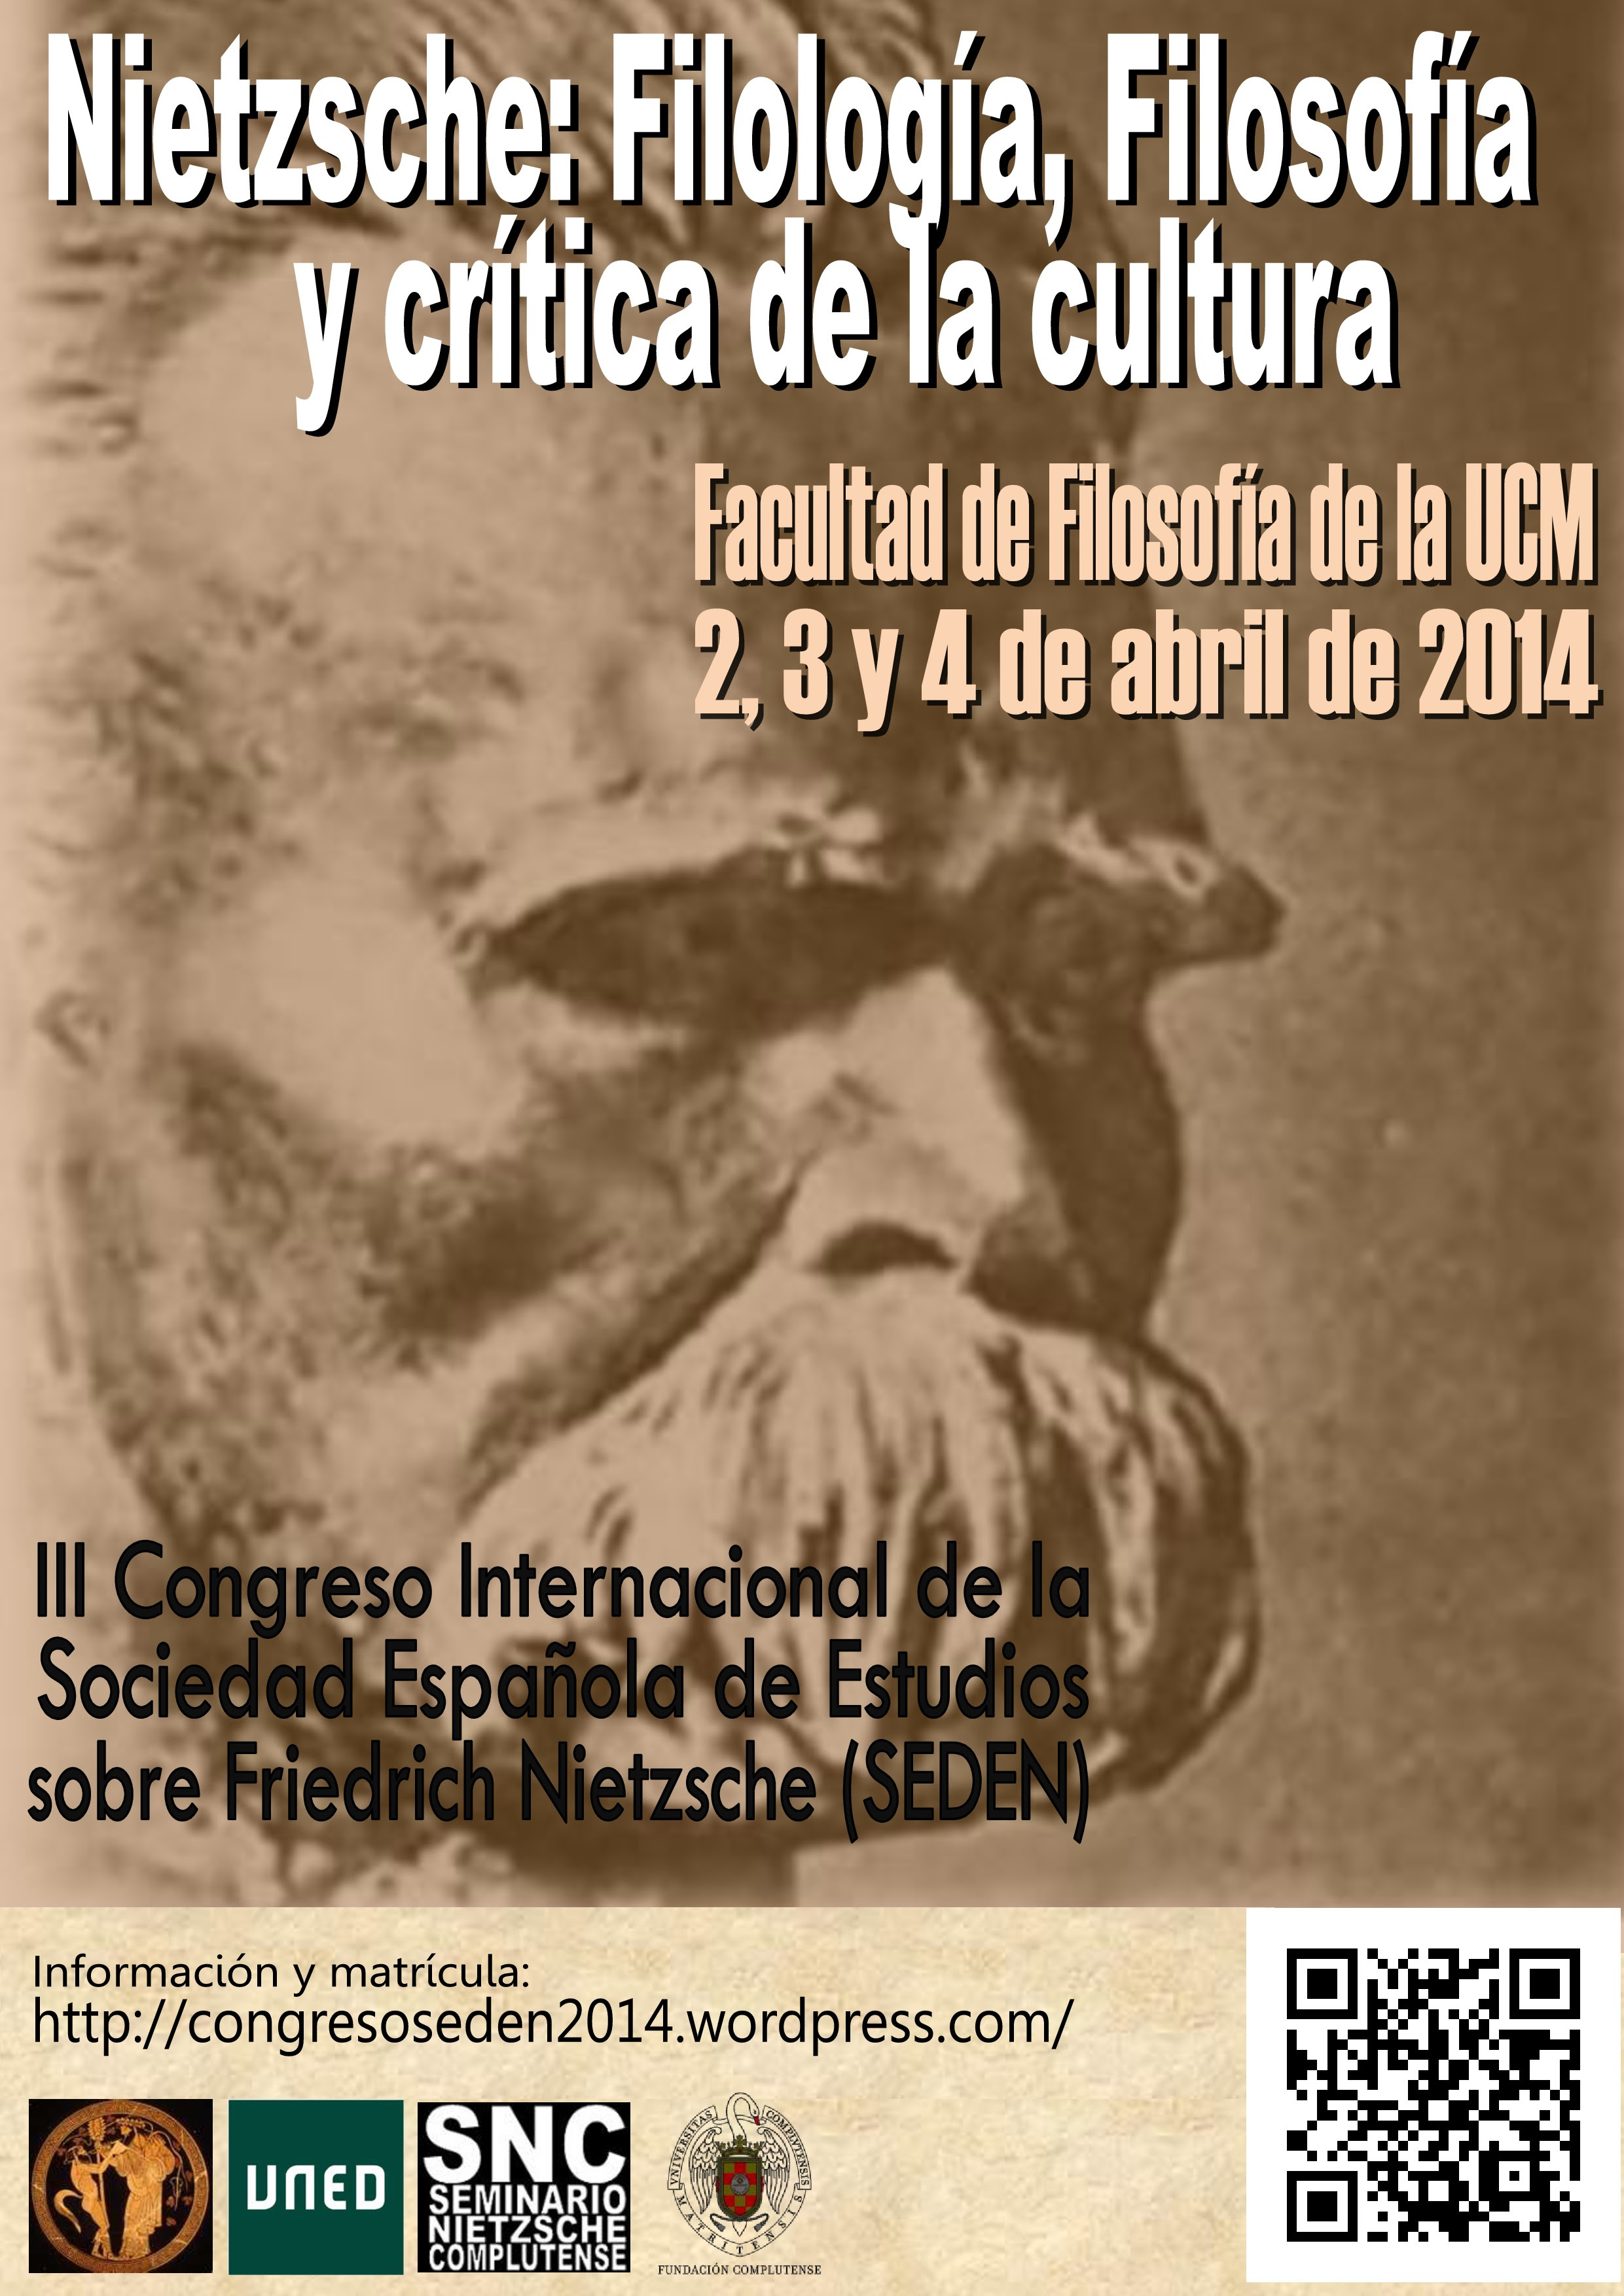 http://congresoseden2014.files.wordpress.com/2014/01/cartel-con-logo-fundacic3b3n-y-matrc3adcula.jpg